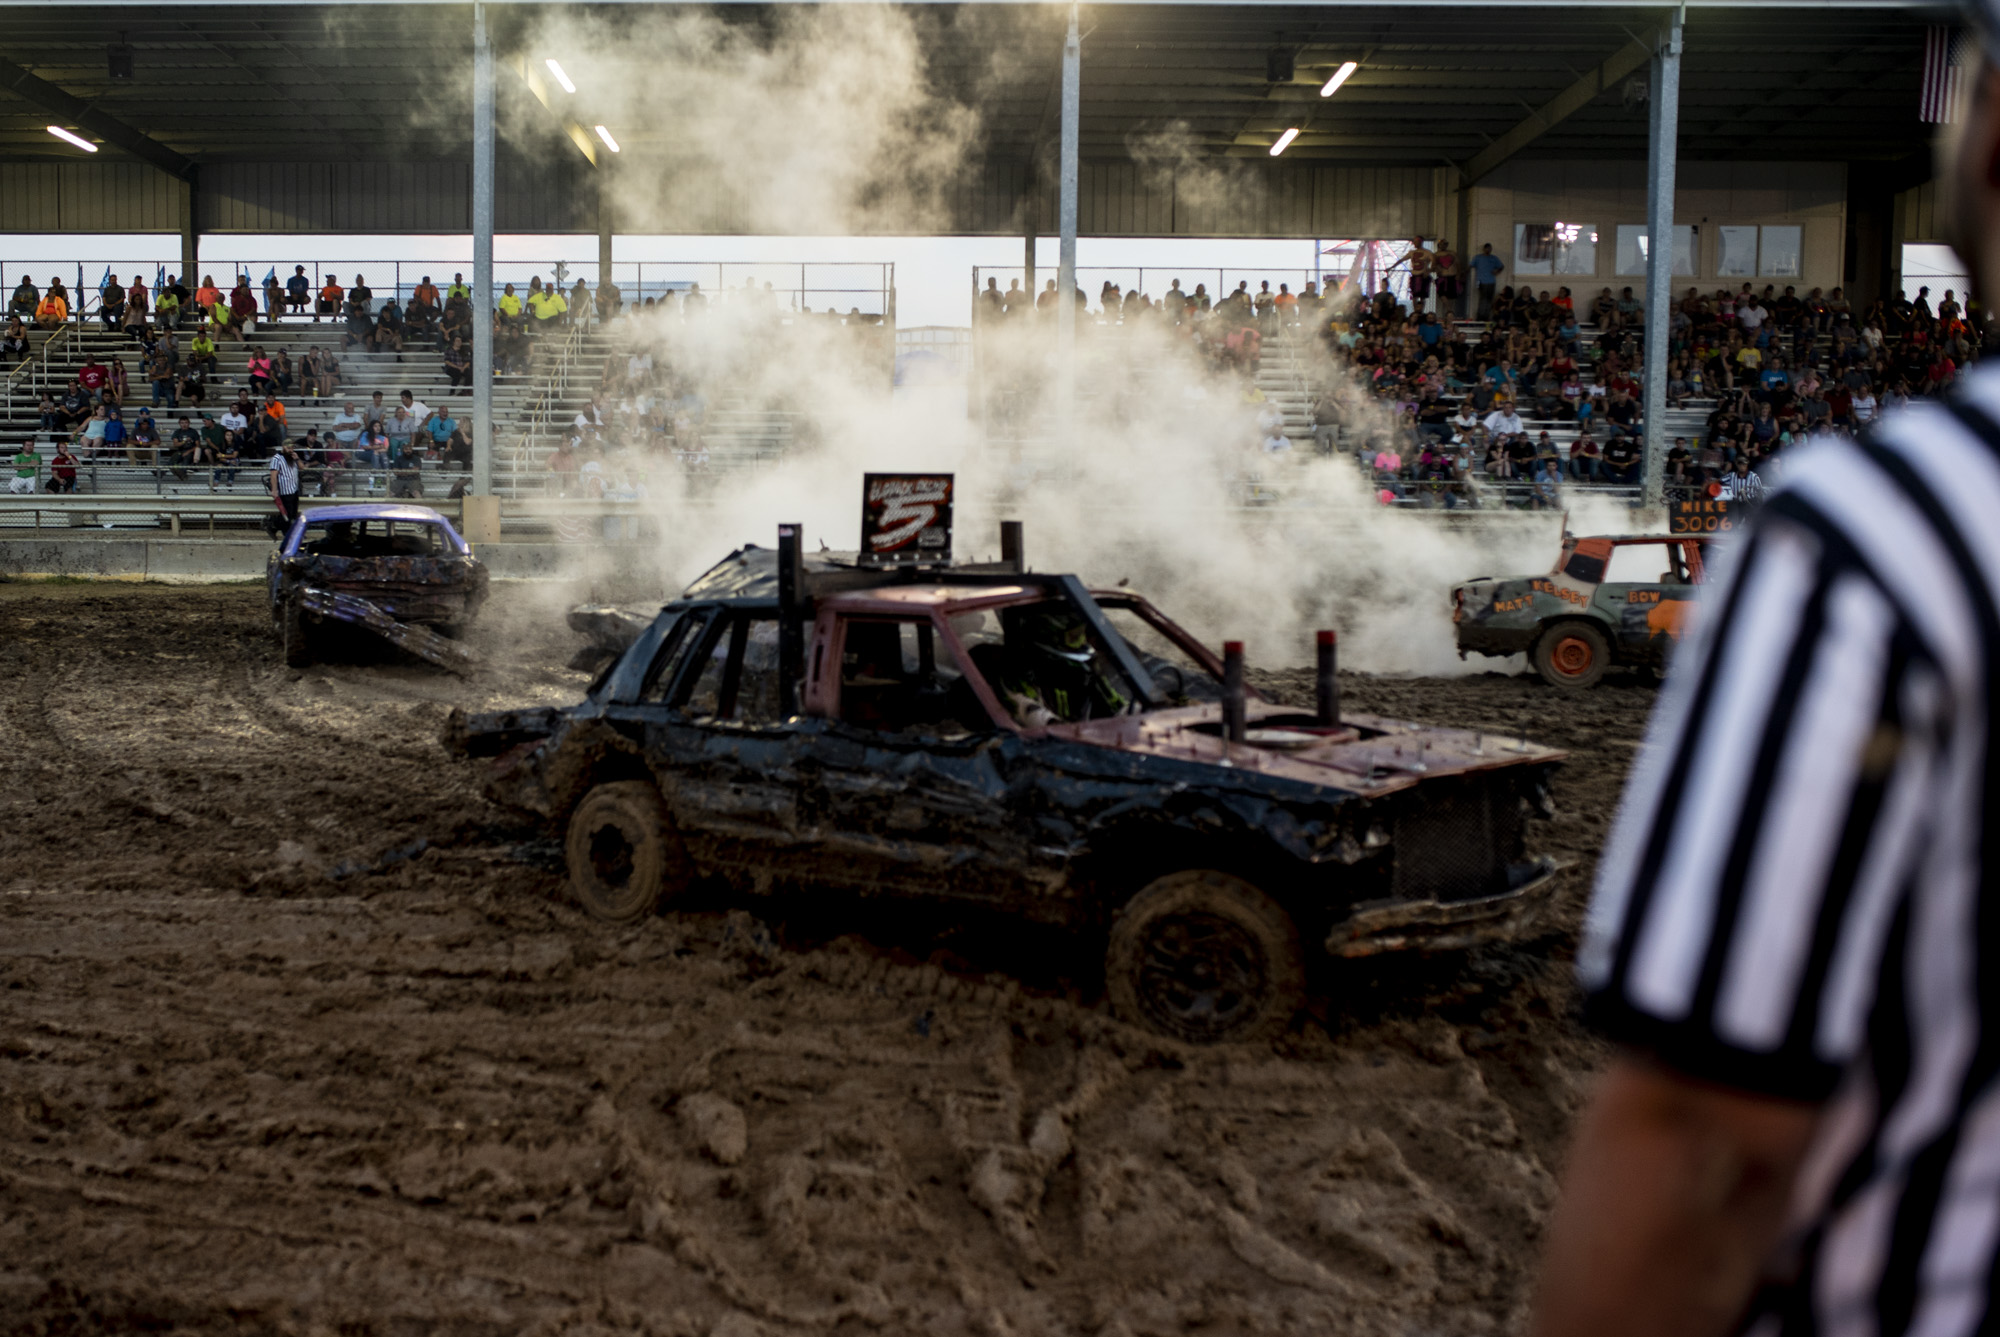 A demolition derby at the Fayetteville County Fair.